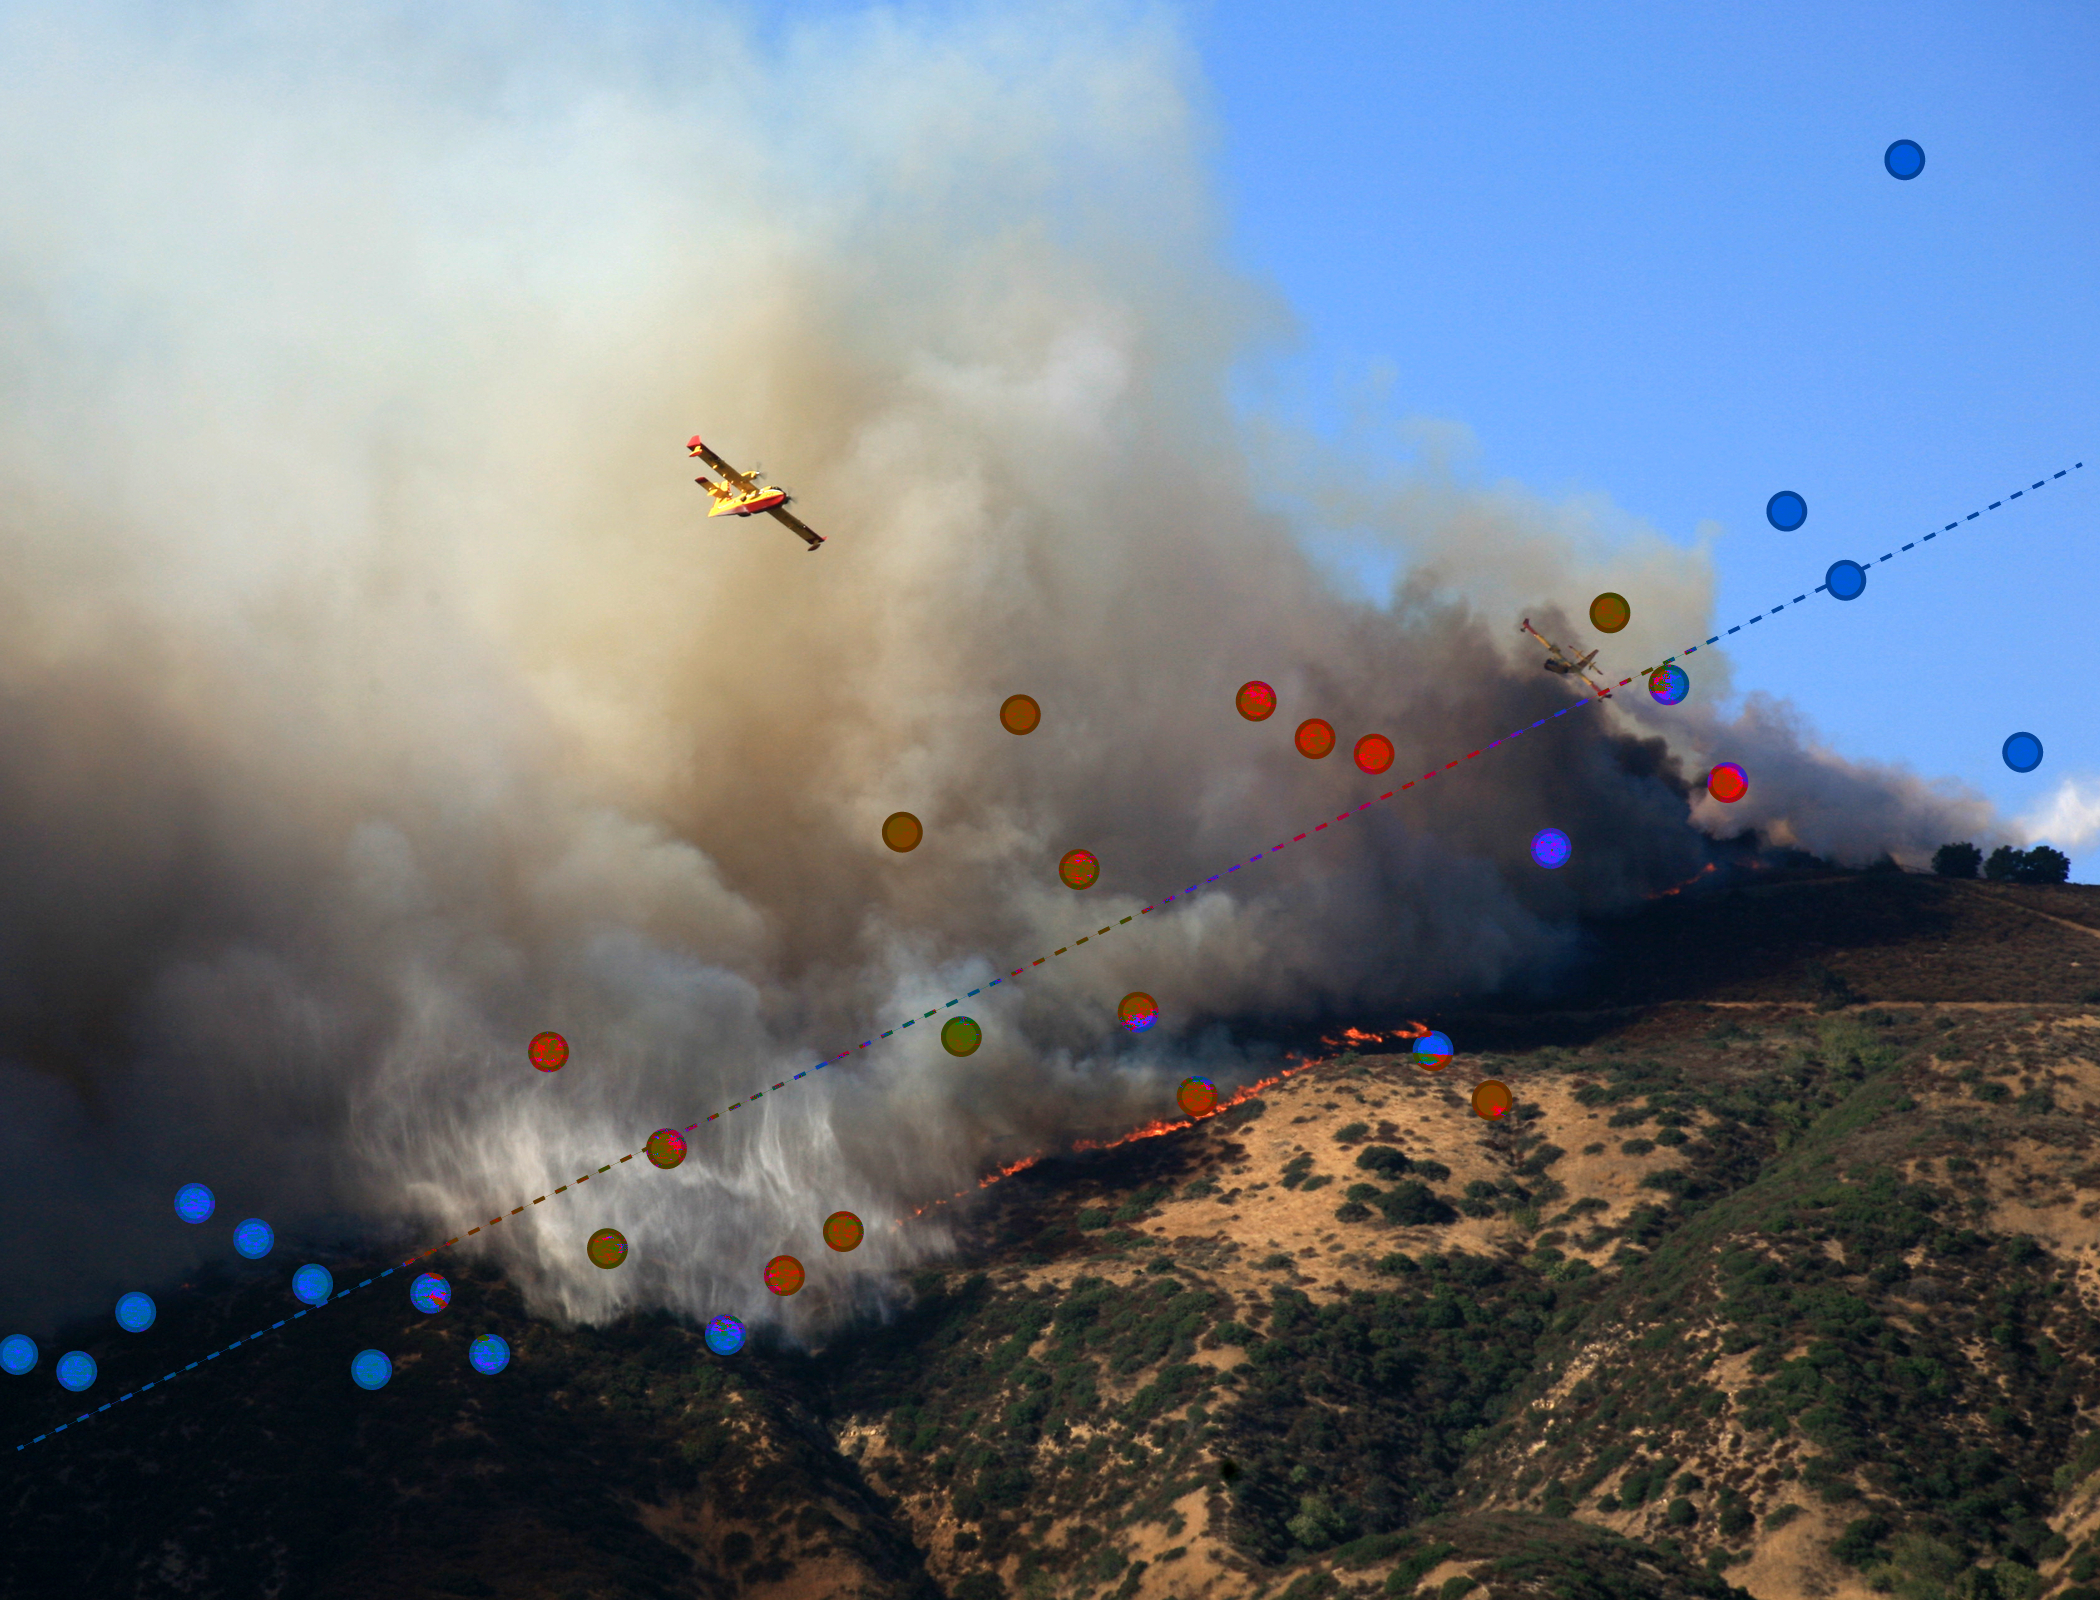 Experts call for tech upgrades to help fight wildfires